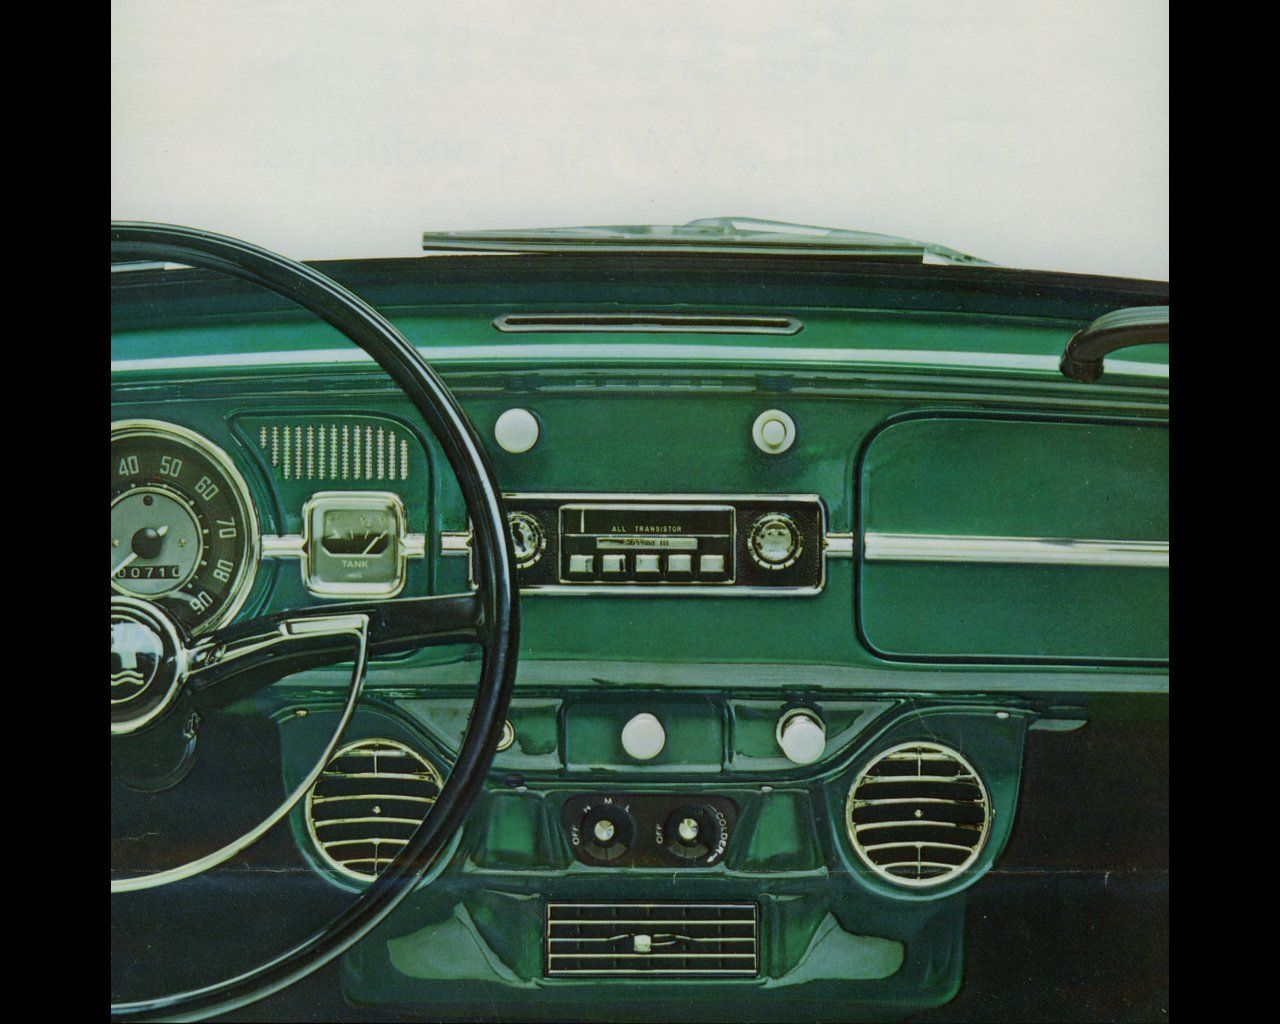 1966 Beetle dash with air conditioning   Air Cooled VWs